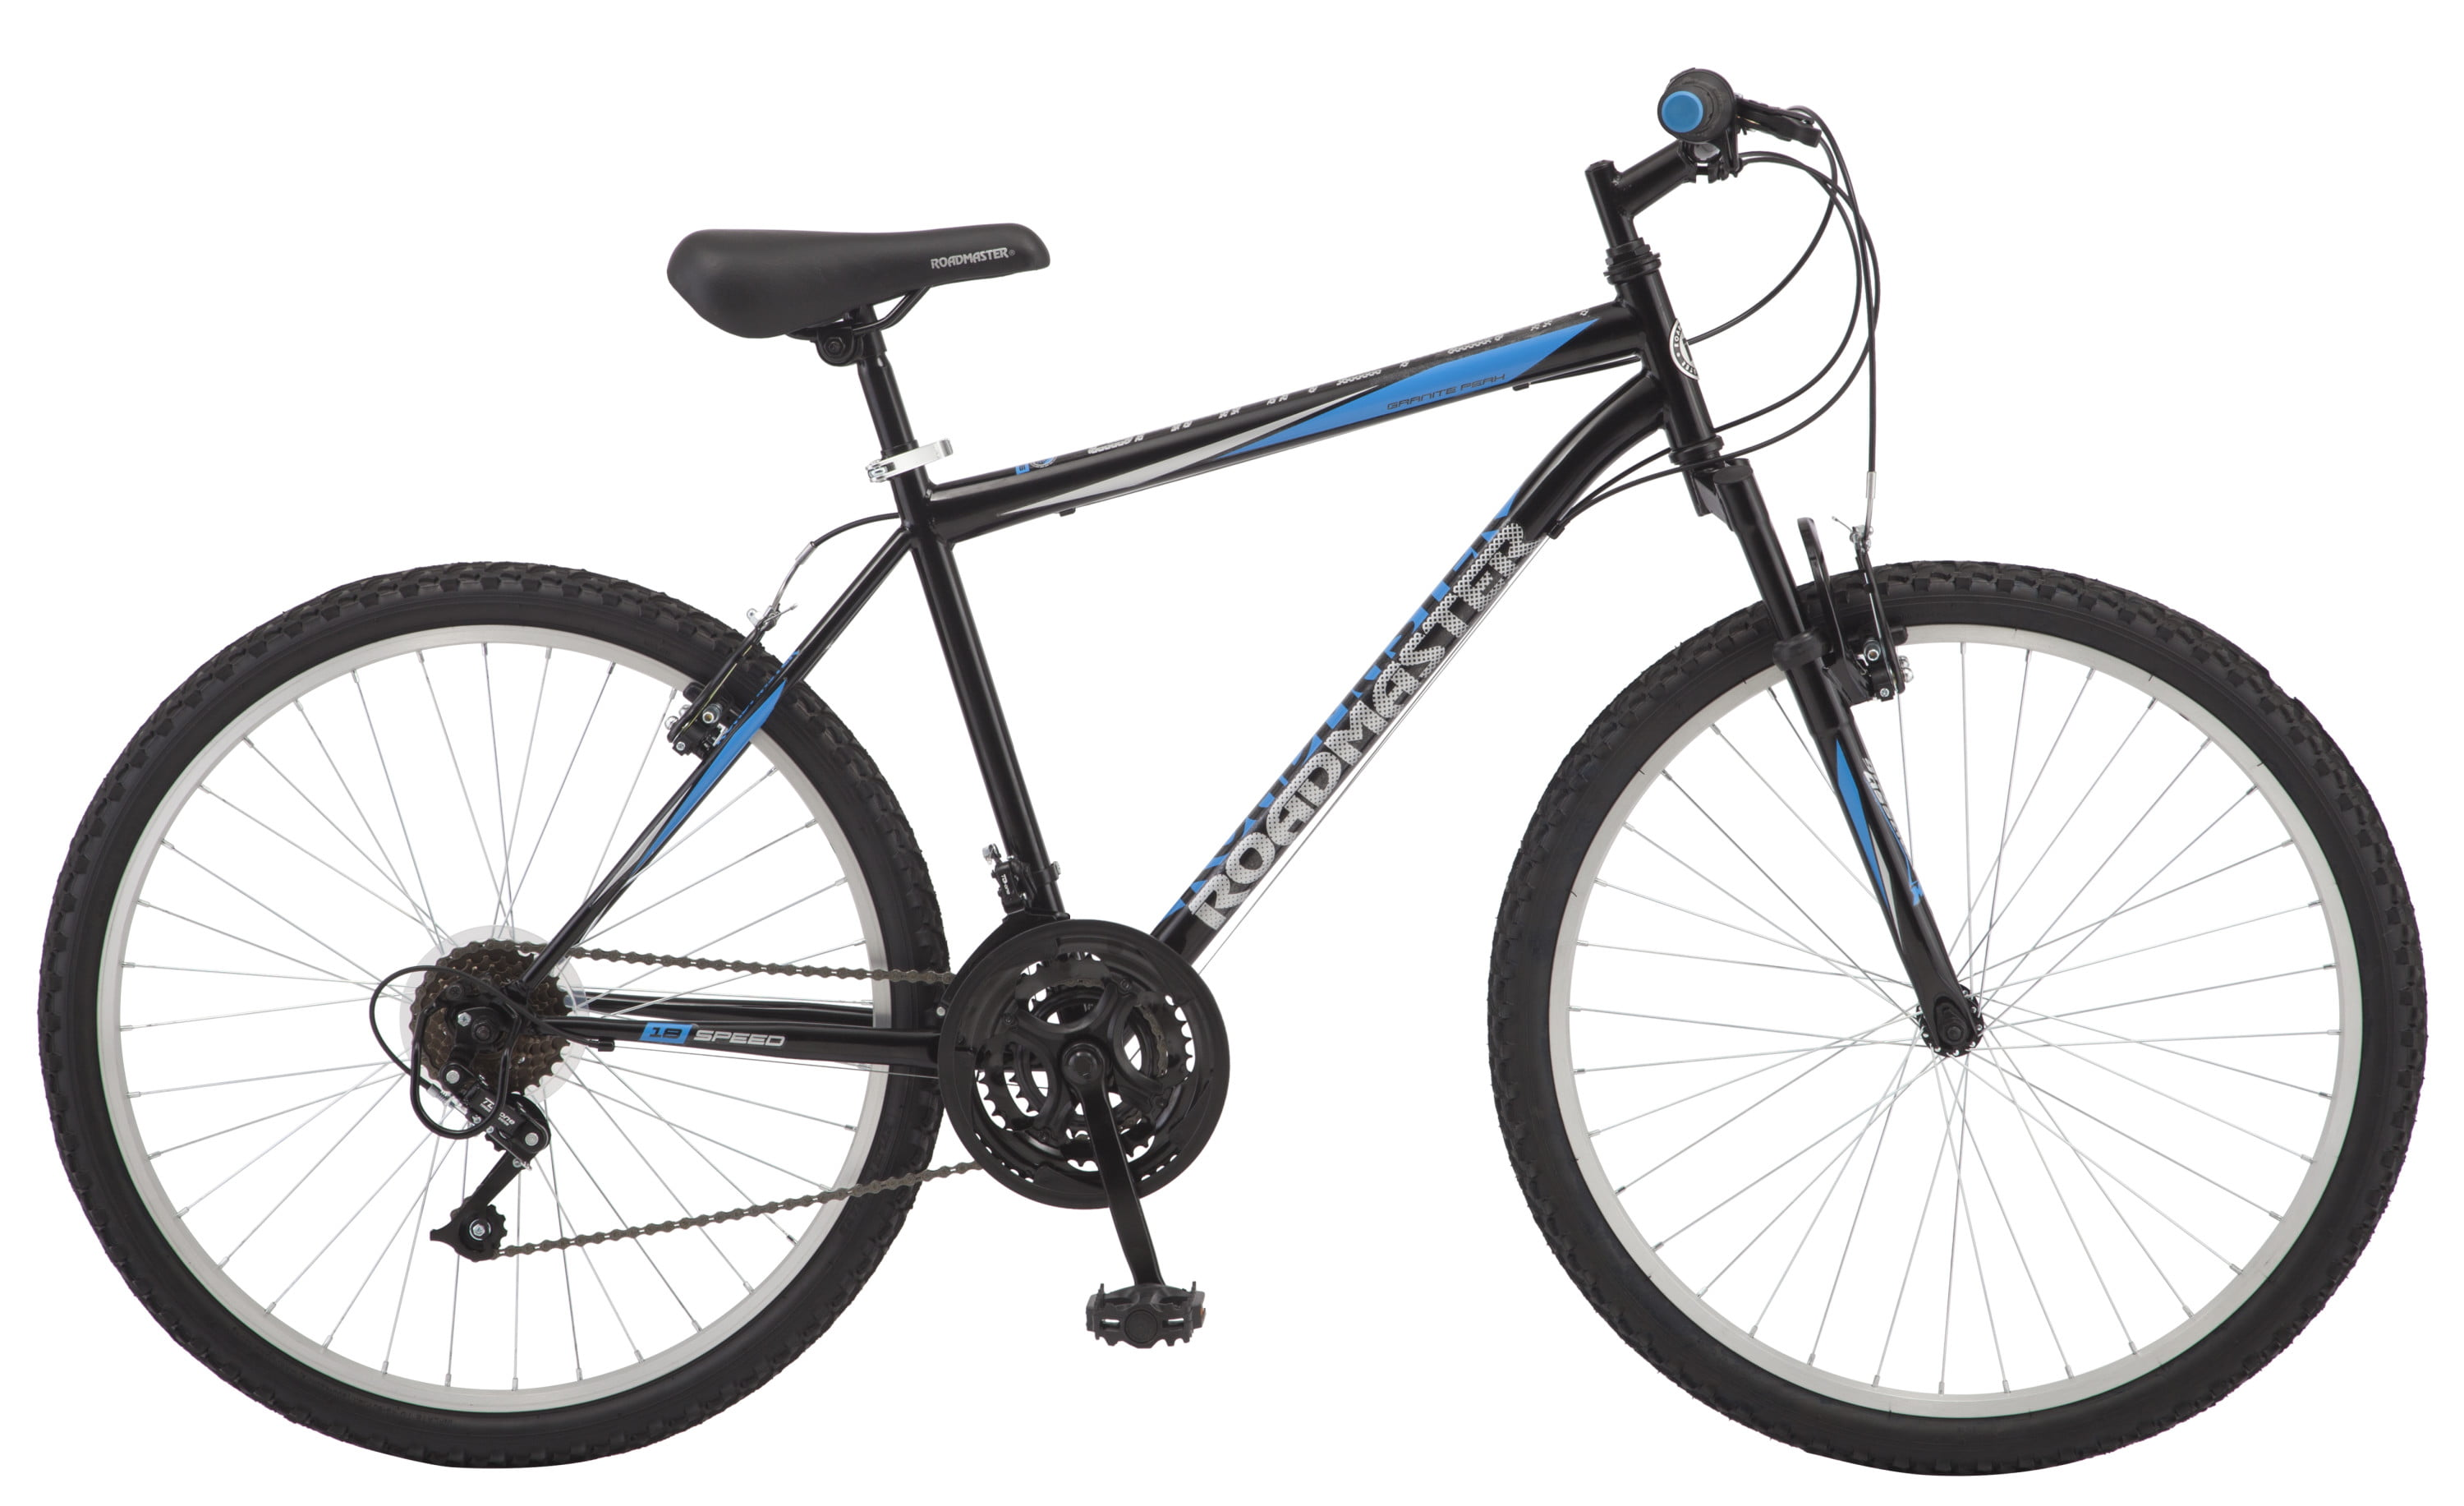 Roadmaster Granite Peak Men S Mountain Bike 26 Wheels Black Blue